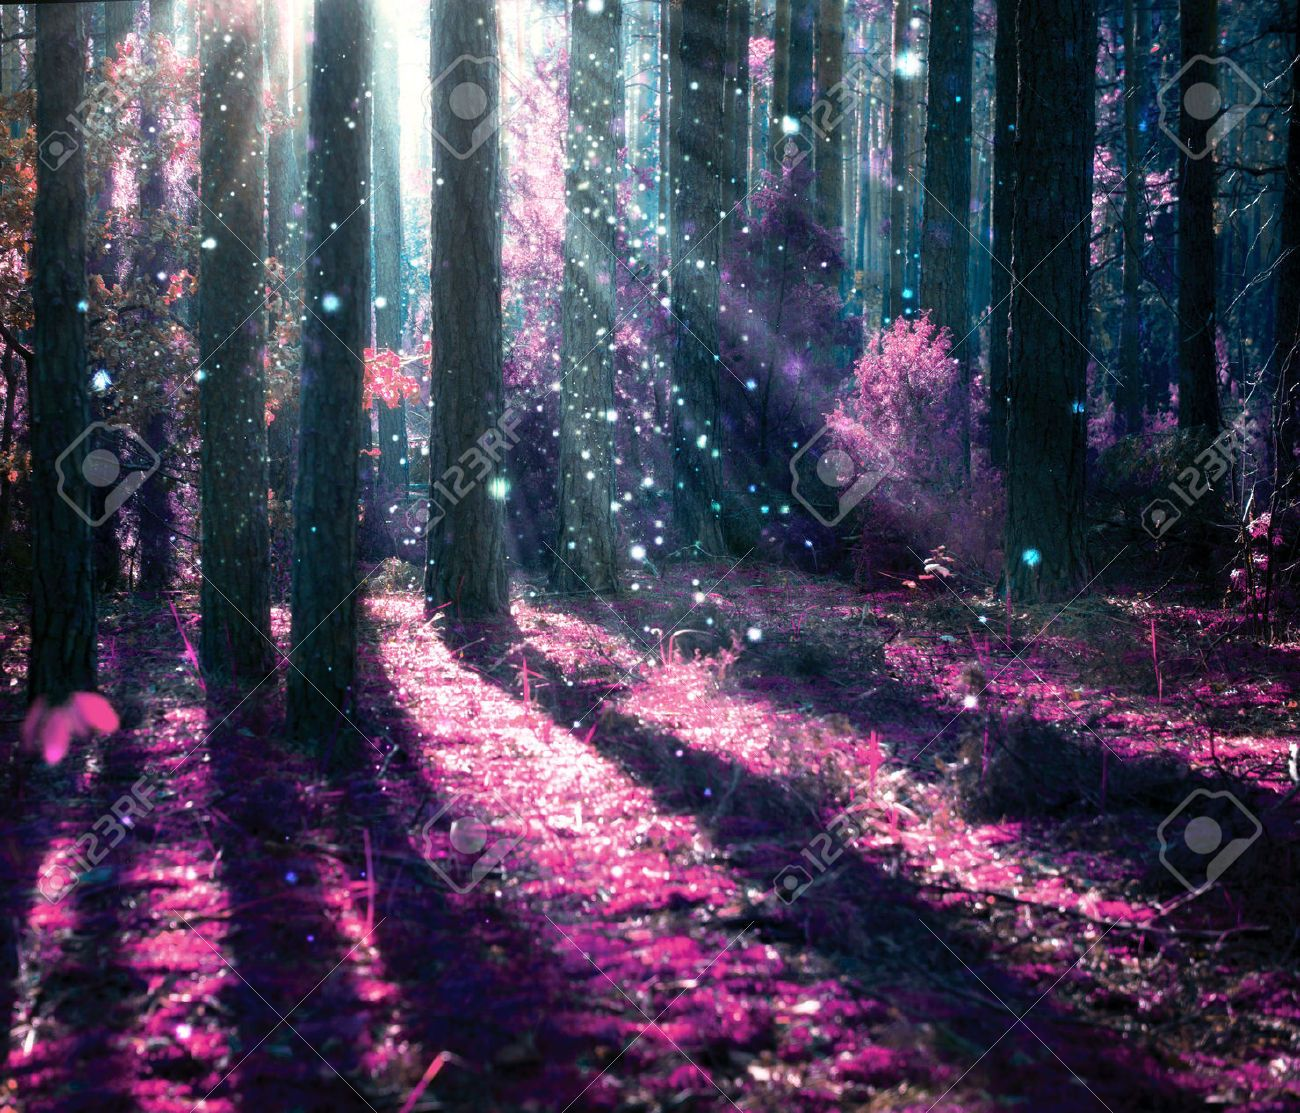 Image Result For Fantasy Jungle Photo Beams Of Light